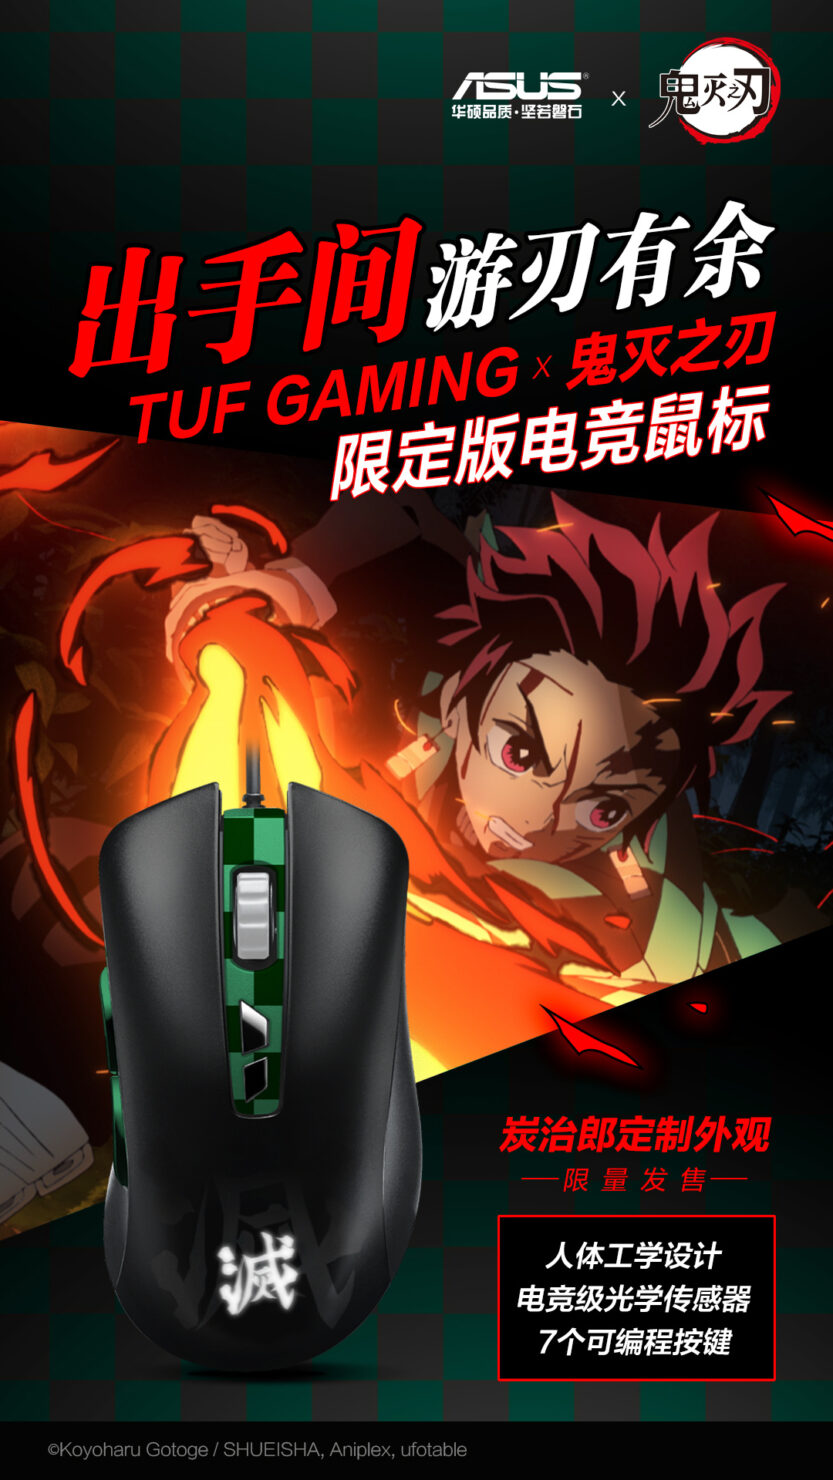 asus-demon-slayer-products-4